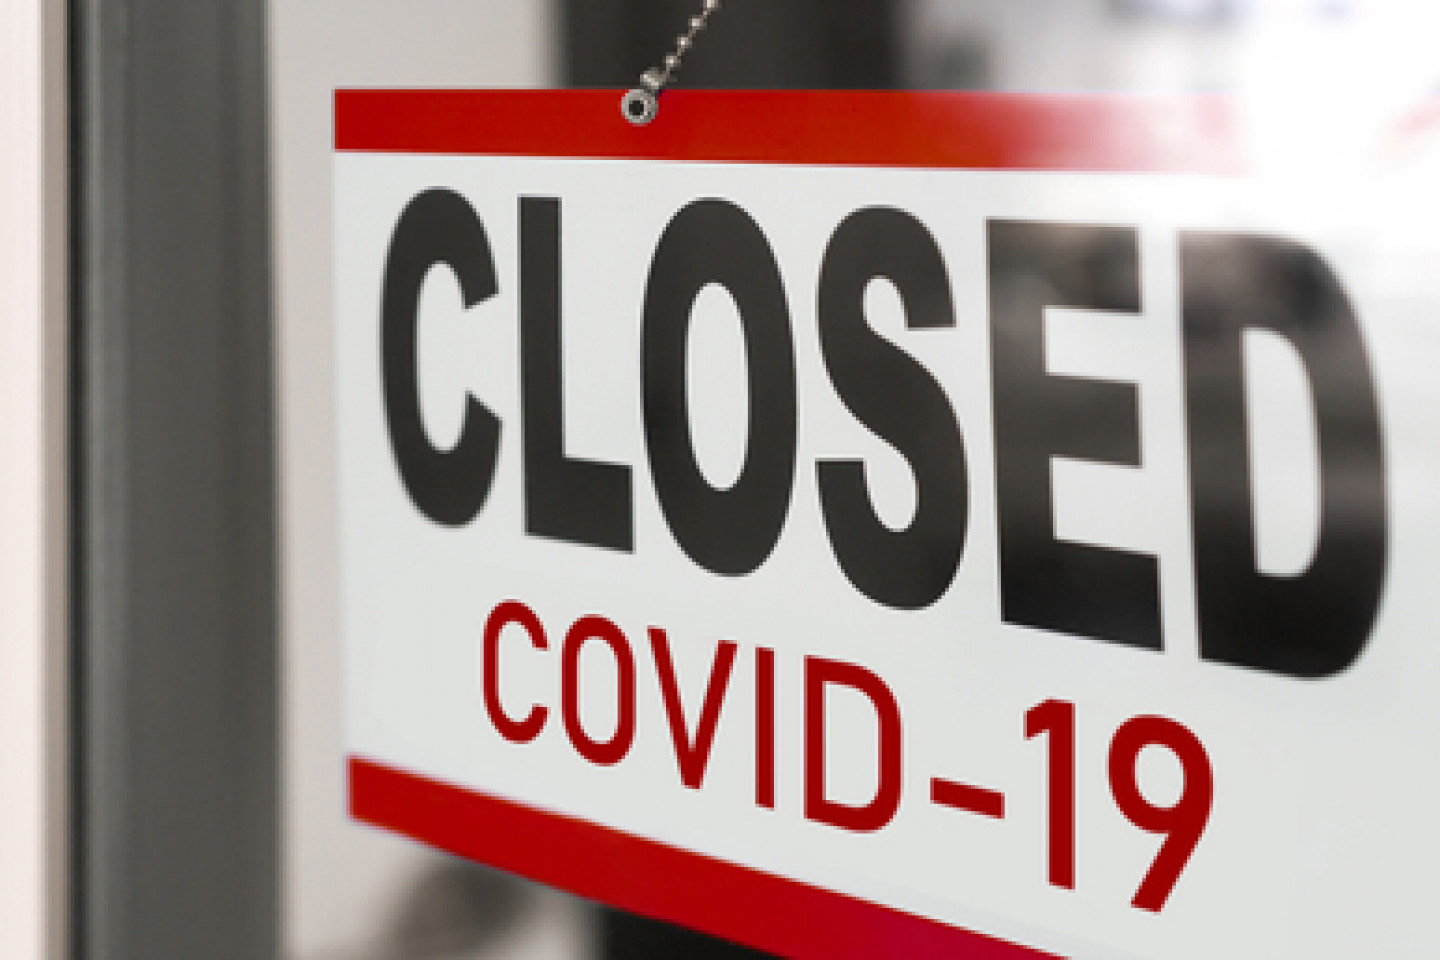 Has Your Business Been Affected by COVID-19?